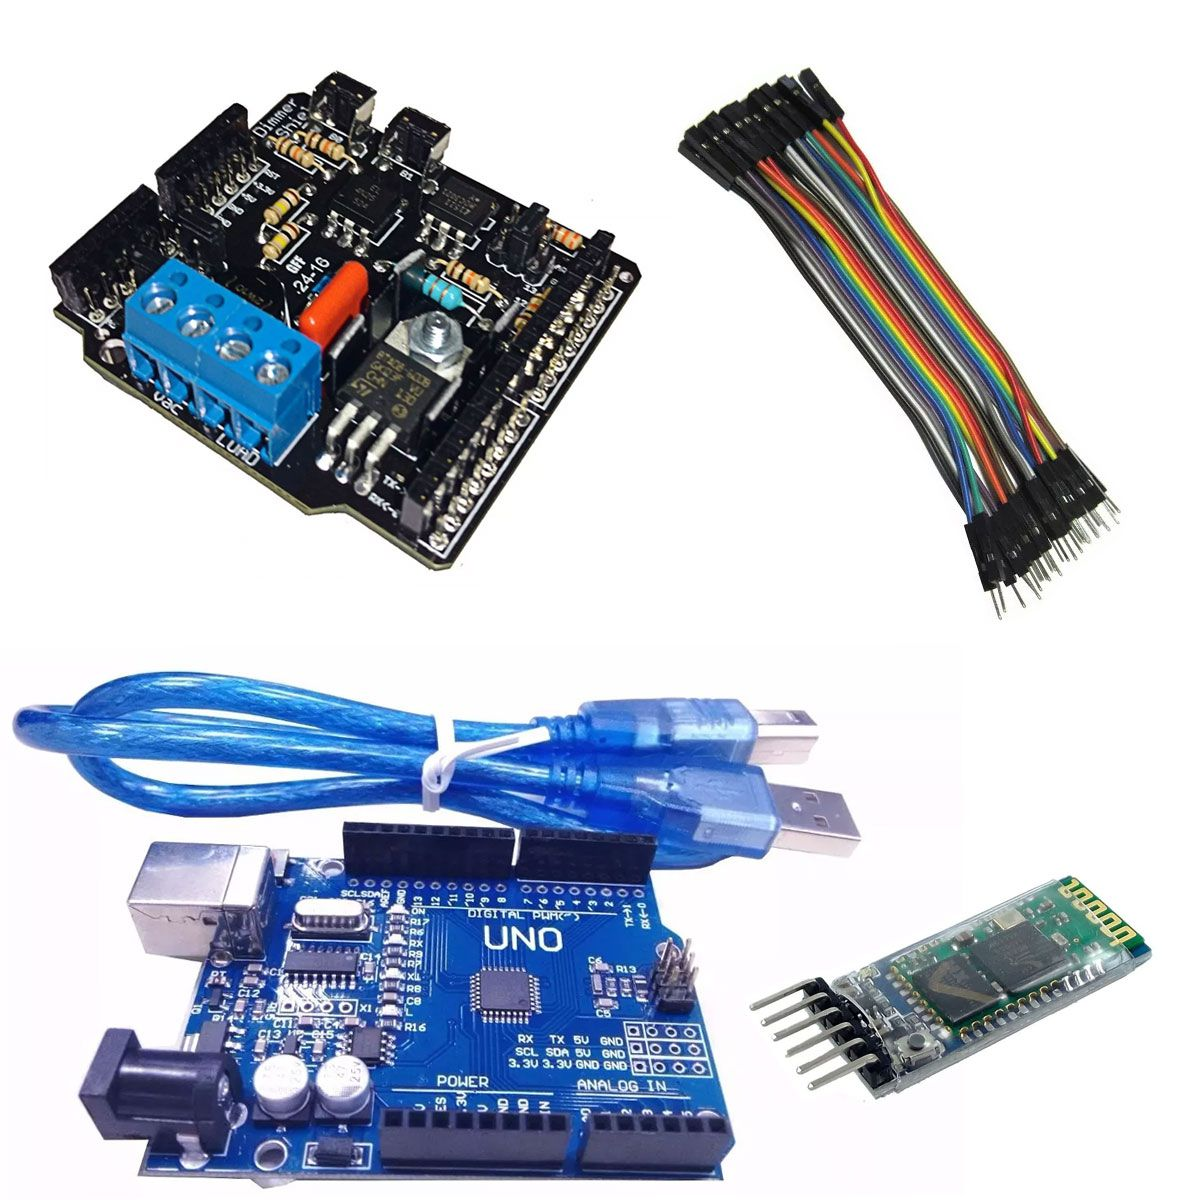 Kit com Dimmer Shield, Bluetooth Hc-05, Jumpers Macho x Fêmea, Placa Uno SMD R3 e Cabo para Arduino